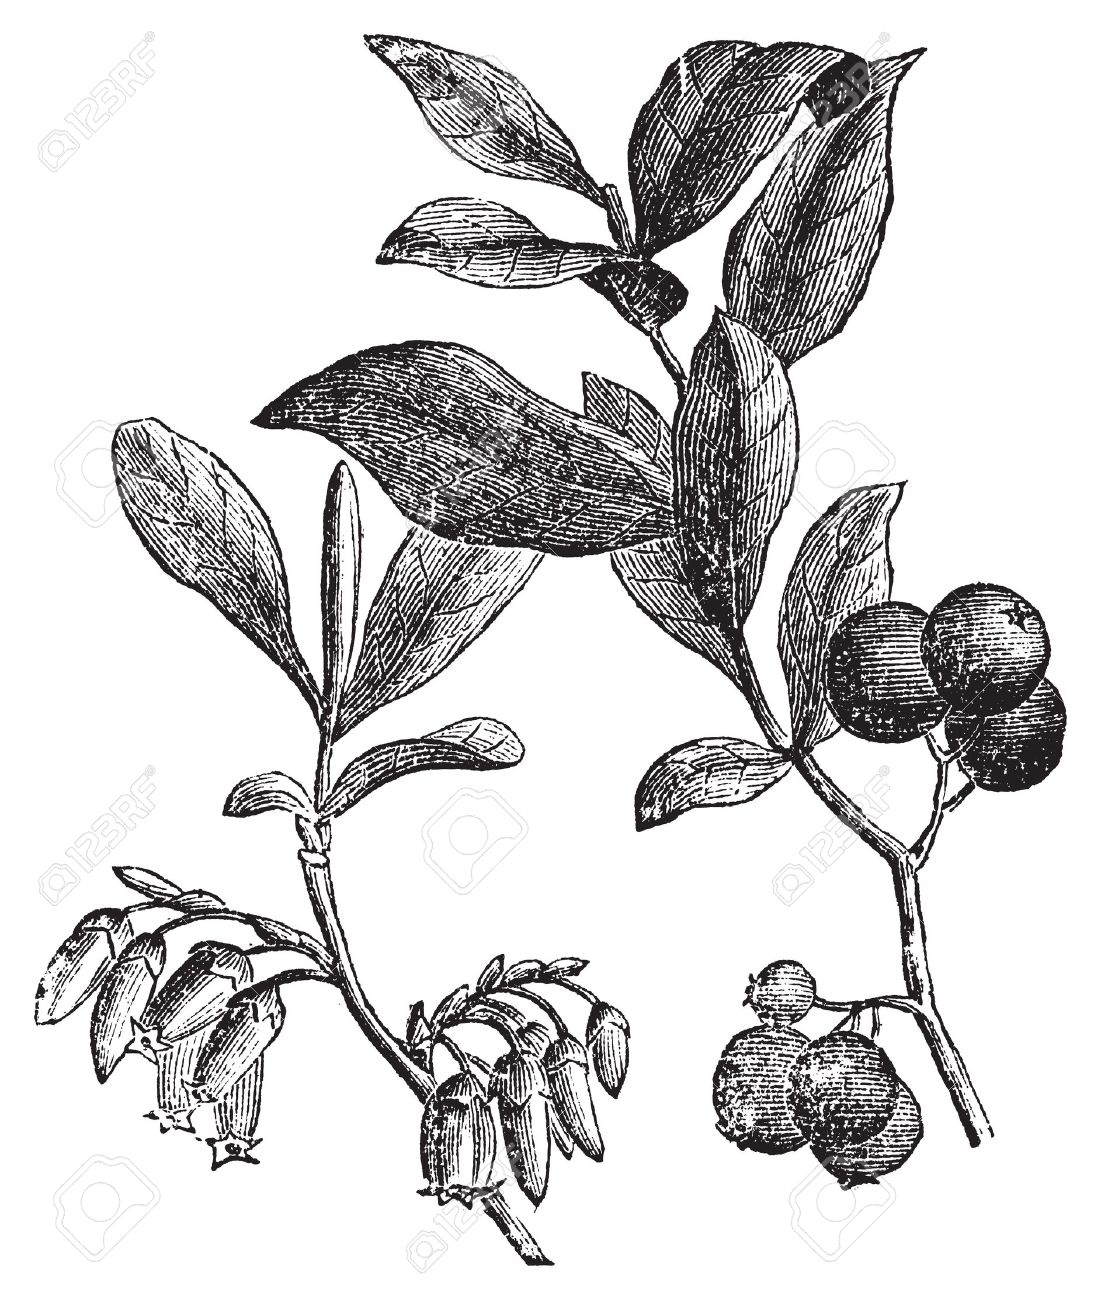 Huckleberry or Gaylussacia resinosa engravin. Old vintage engraved illustration of huckleberry plant. The huckleberry is the state fruit of Idaho. Stock Vector - 13770823